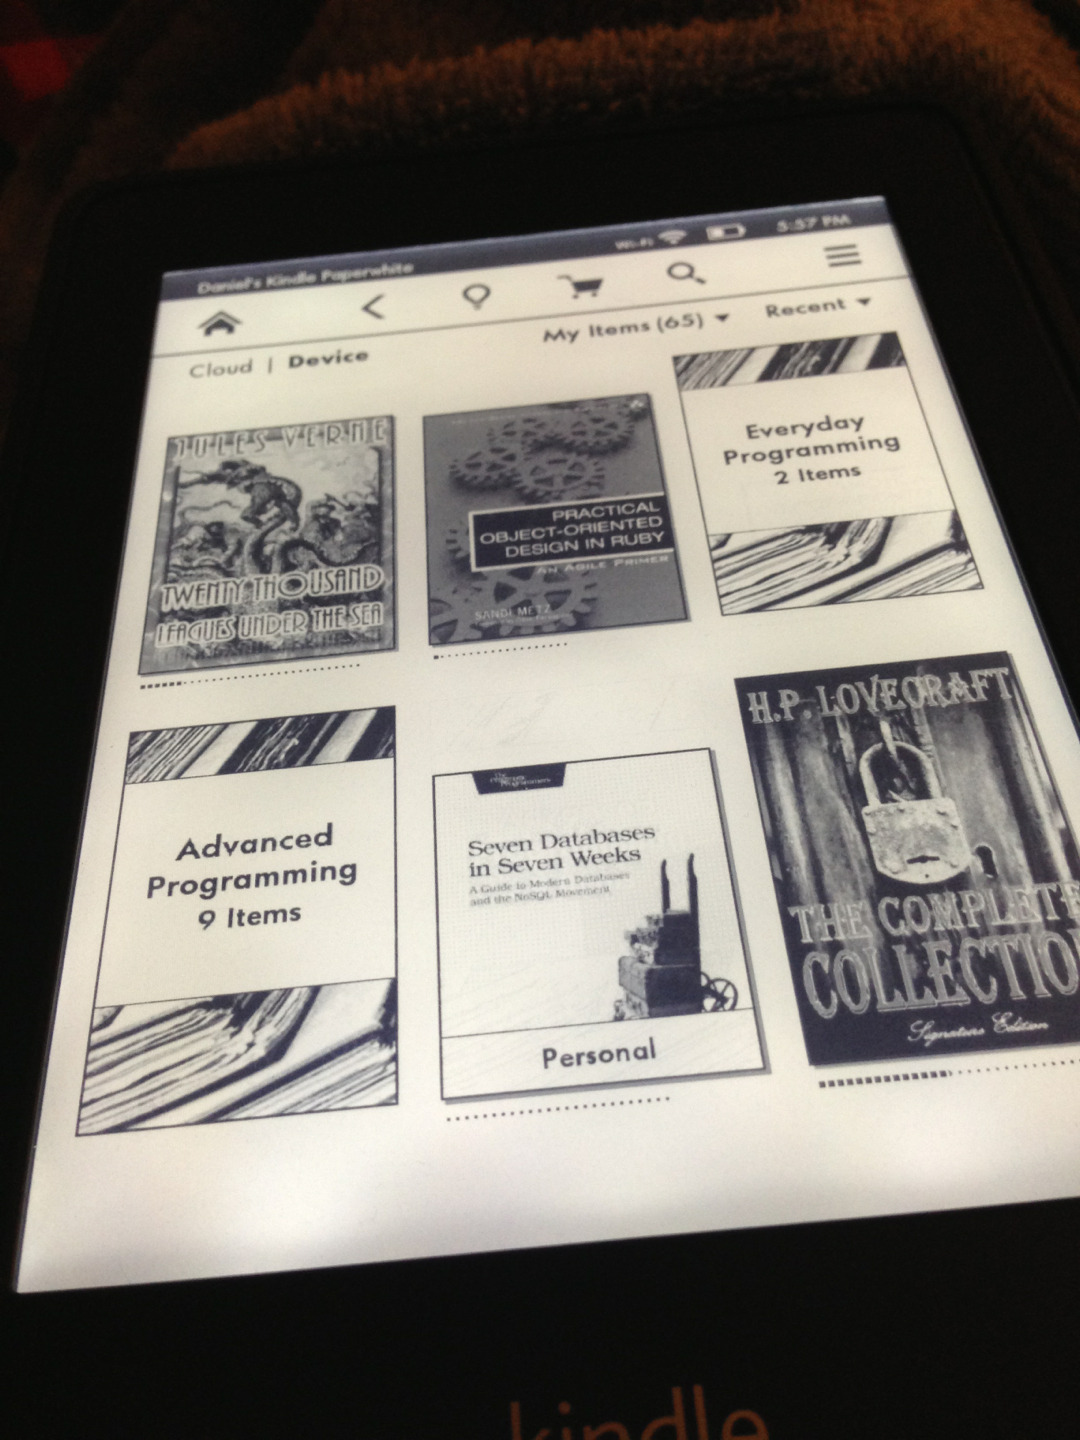 I love my Kindle Paperwhite. What do you read ebooks on?